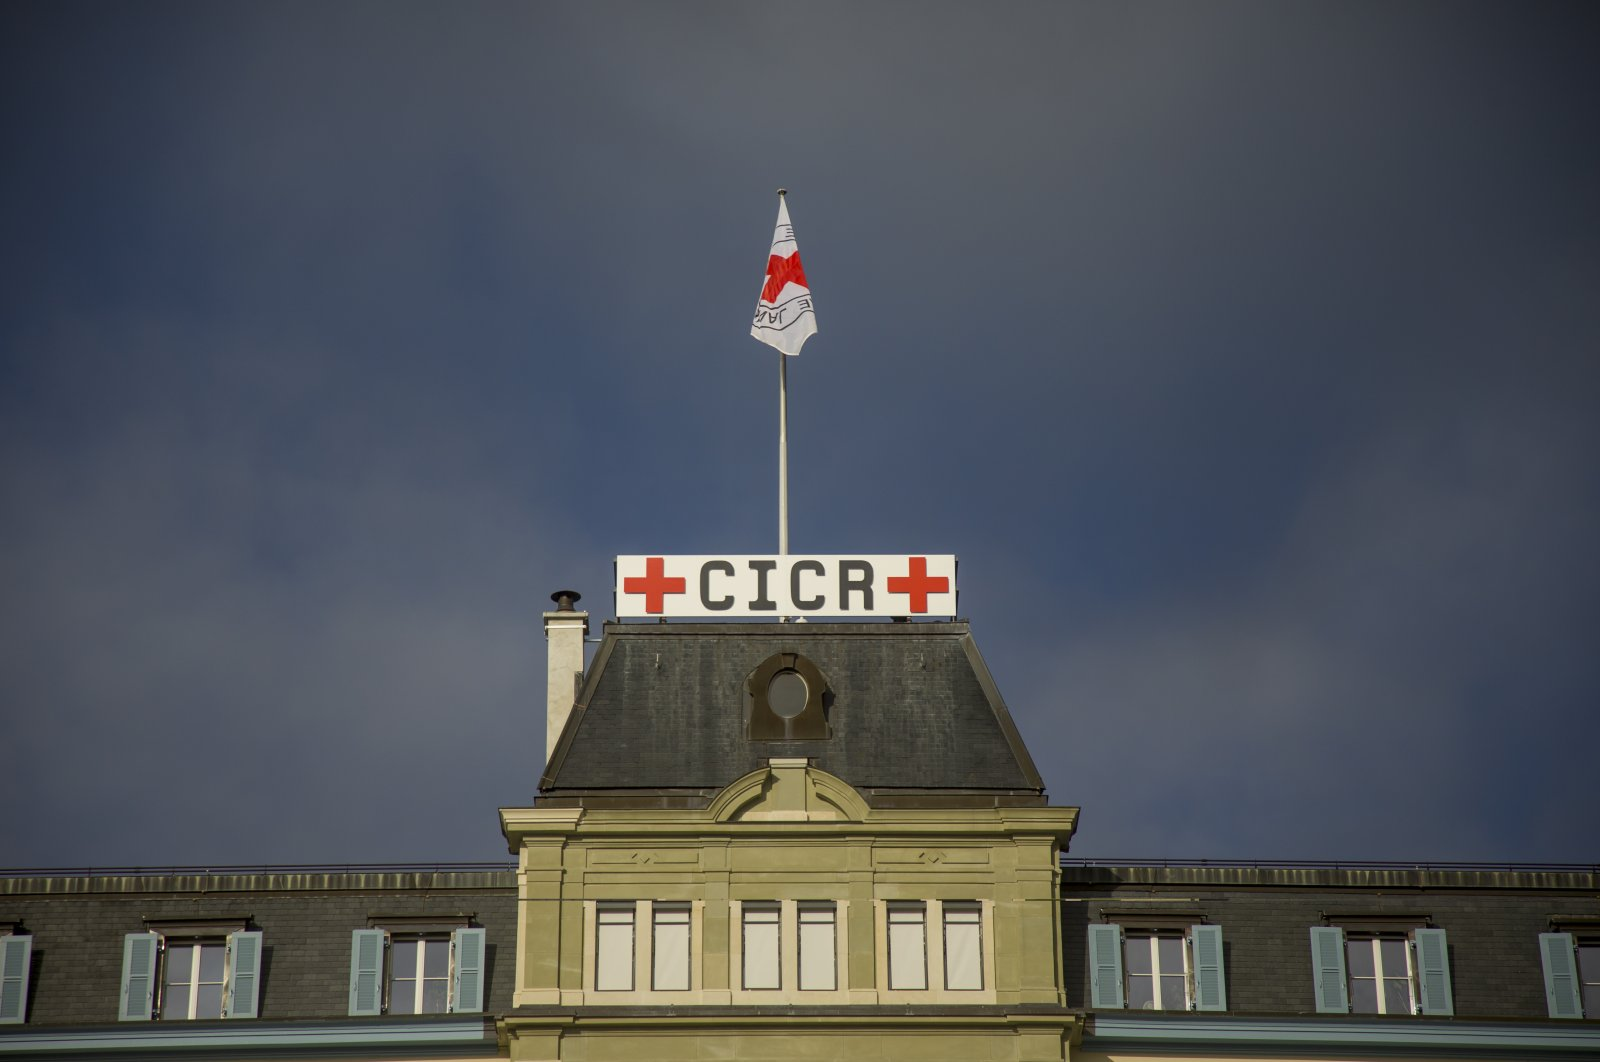 The headquarters of the International Committee of the Red Cross (ICRC), in Geneva, Switzerland, Dec. 31, 2018. (Getty Images)